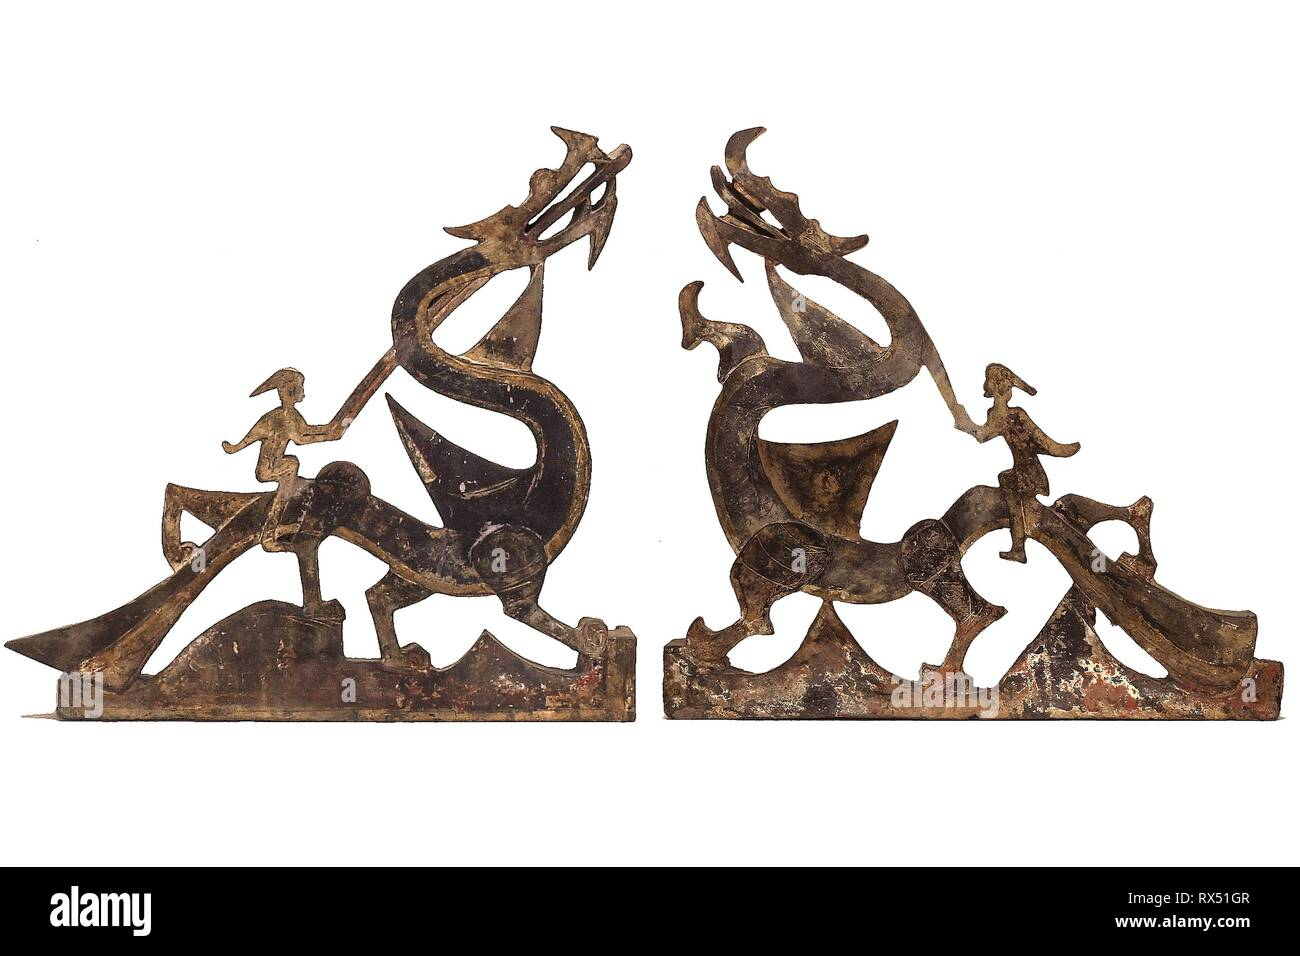 Immortals Riding Dragons: Sections of a Tomb Pediment. China; probably from Henan province. Date: 206 AD-220 AD. Dimensions: . Gray earthenware with traces of slip and polychrome pigments. Origin: China. Museum: The Chicago Art Institute. - Stock Image